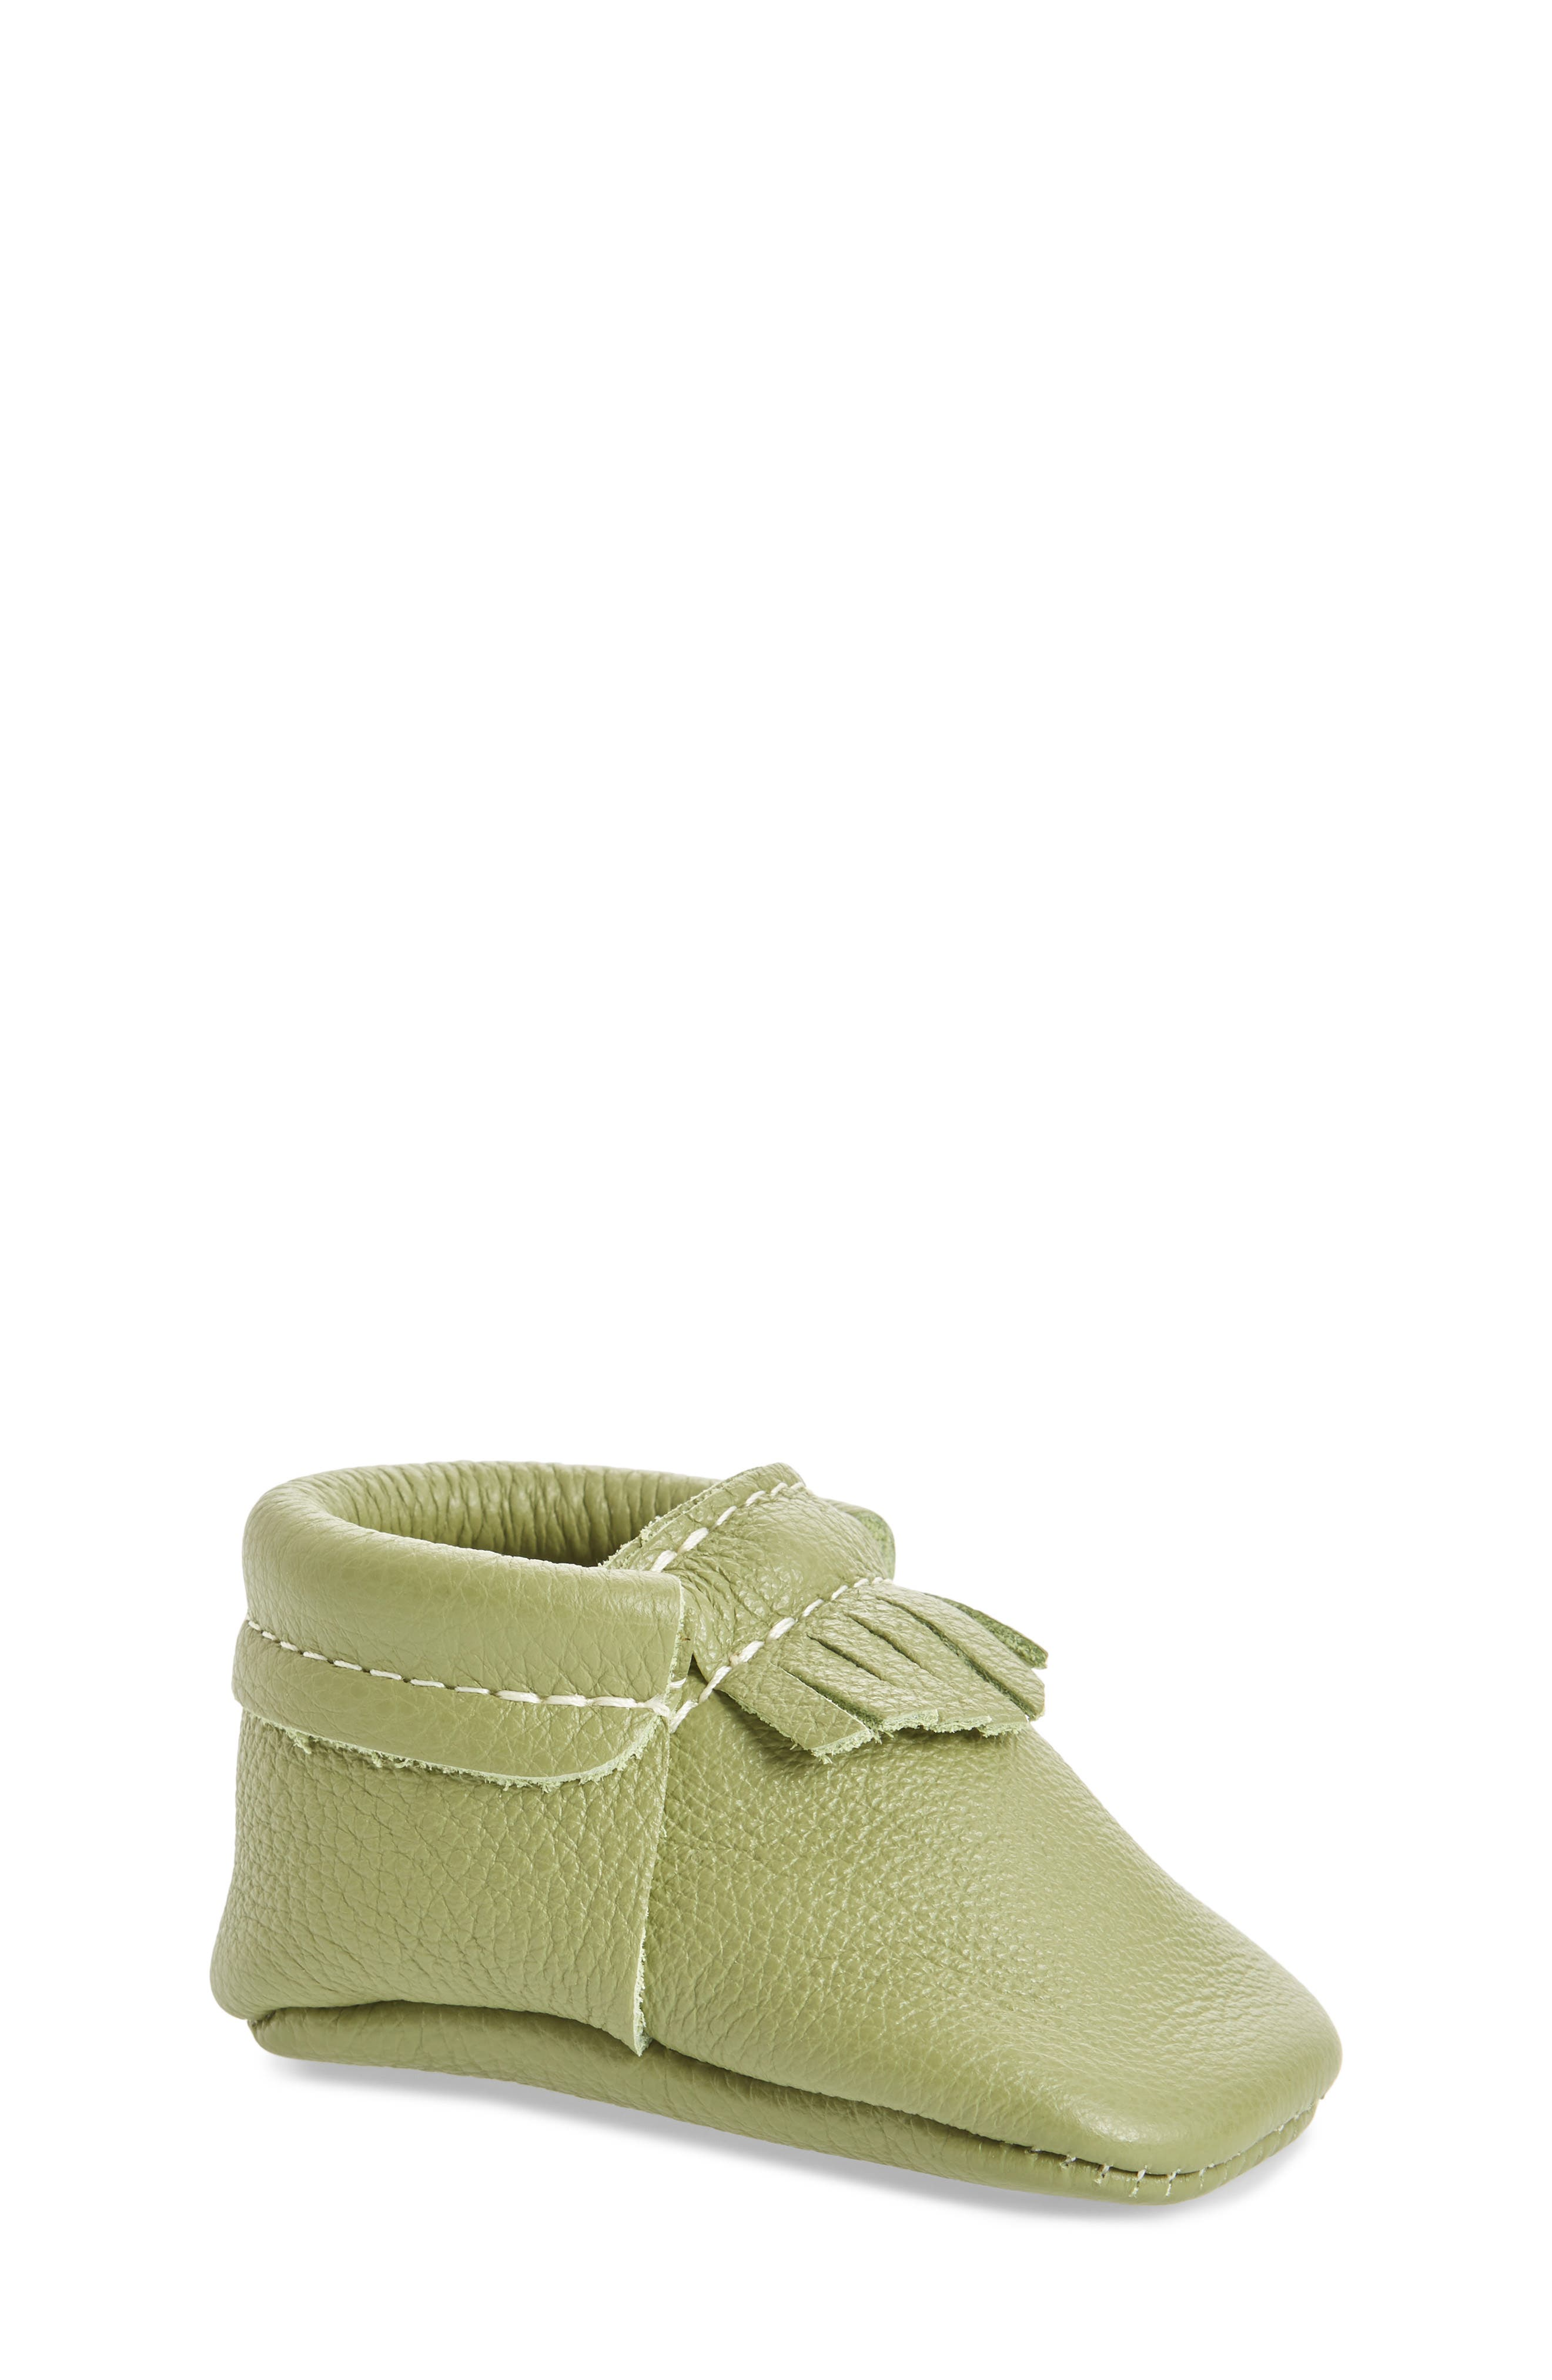 Leather Moccasin,                             Main thumbnail 1, color,                             GREEN LEATHER